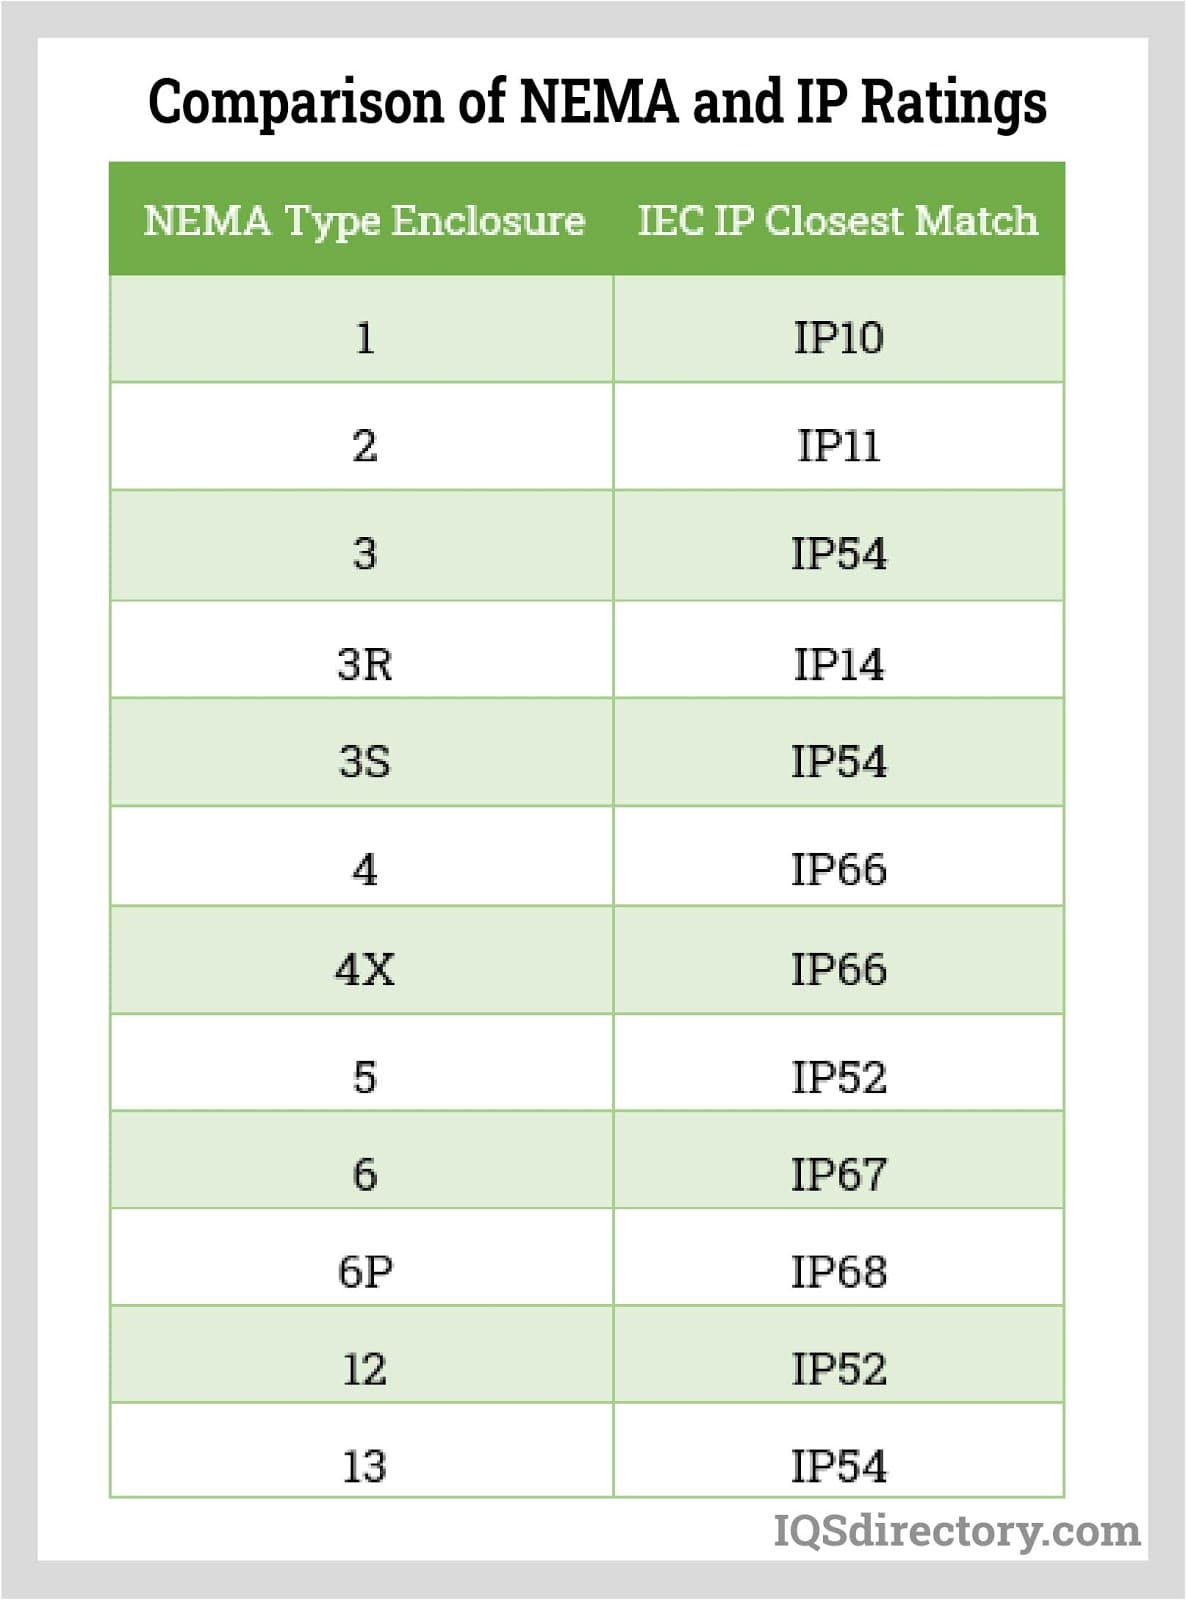 Comparison of NEMA and IP Ratings